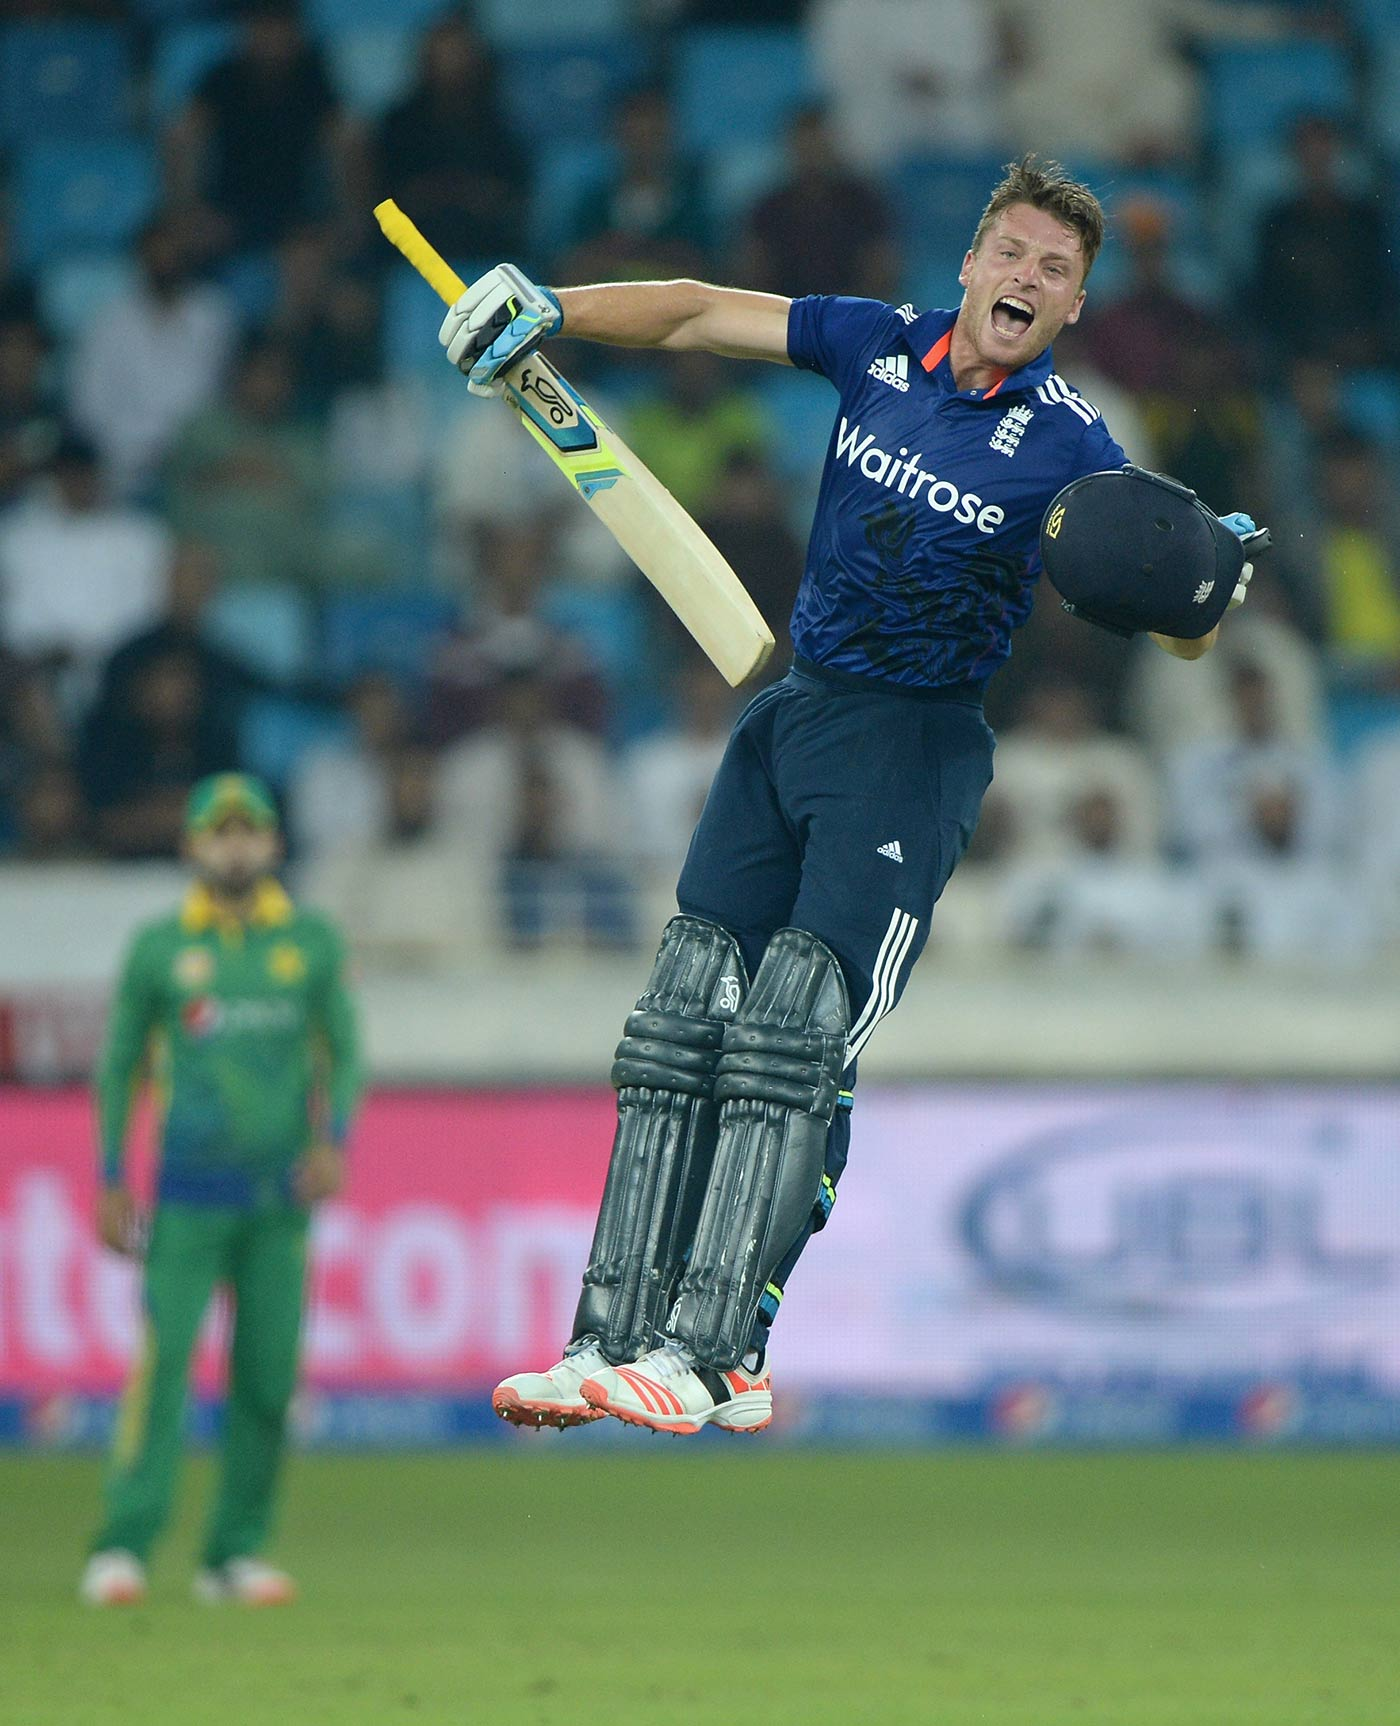 Pedal to the metal: Buttler repeatedly broke the record for fastest ODI hundred by an Englishman, most recently against Pakistan in Dubai in November 2015